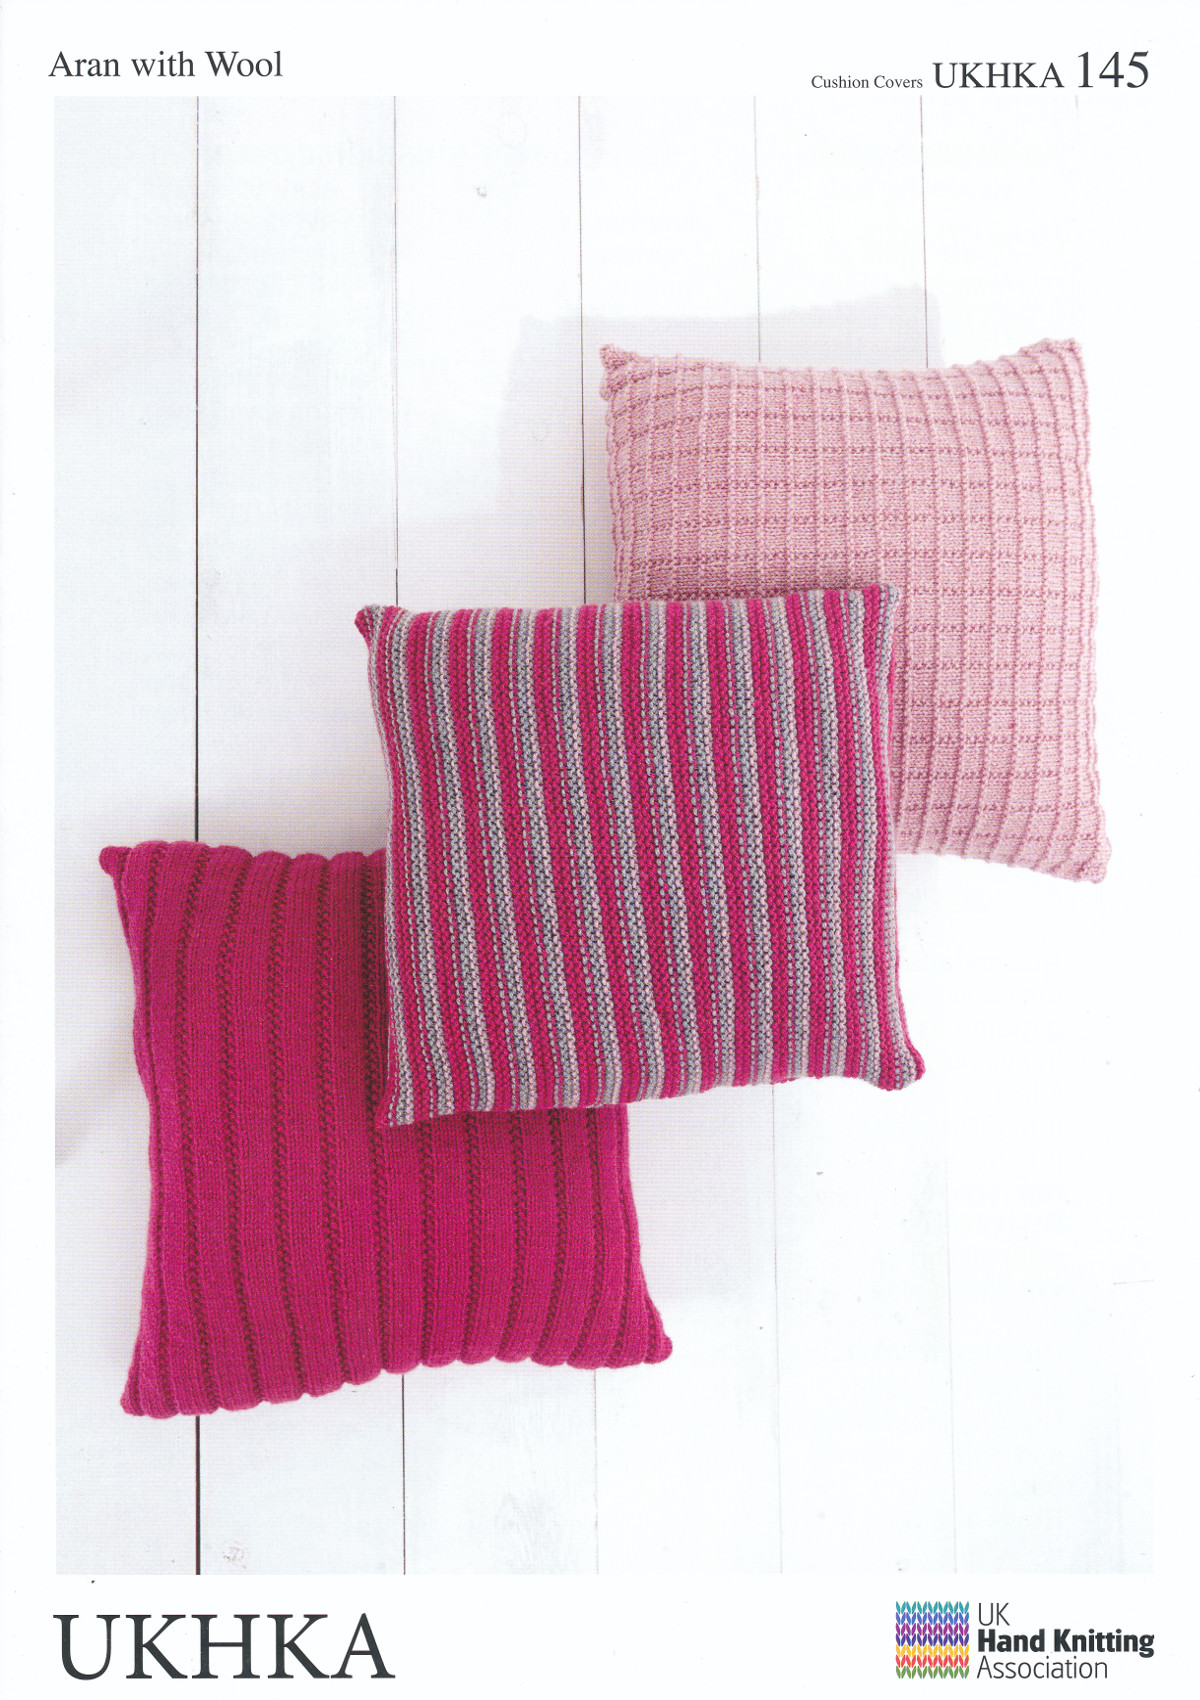 Aran Knitting Pattern UKHKA 145 Easy Knit Striped Ribbed Squares Cushion Cove...